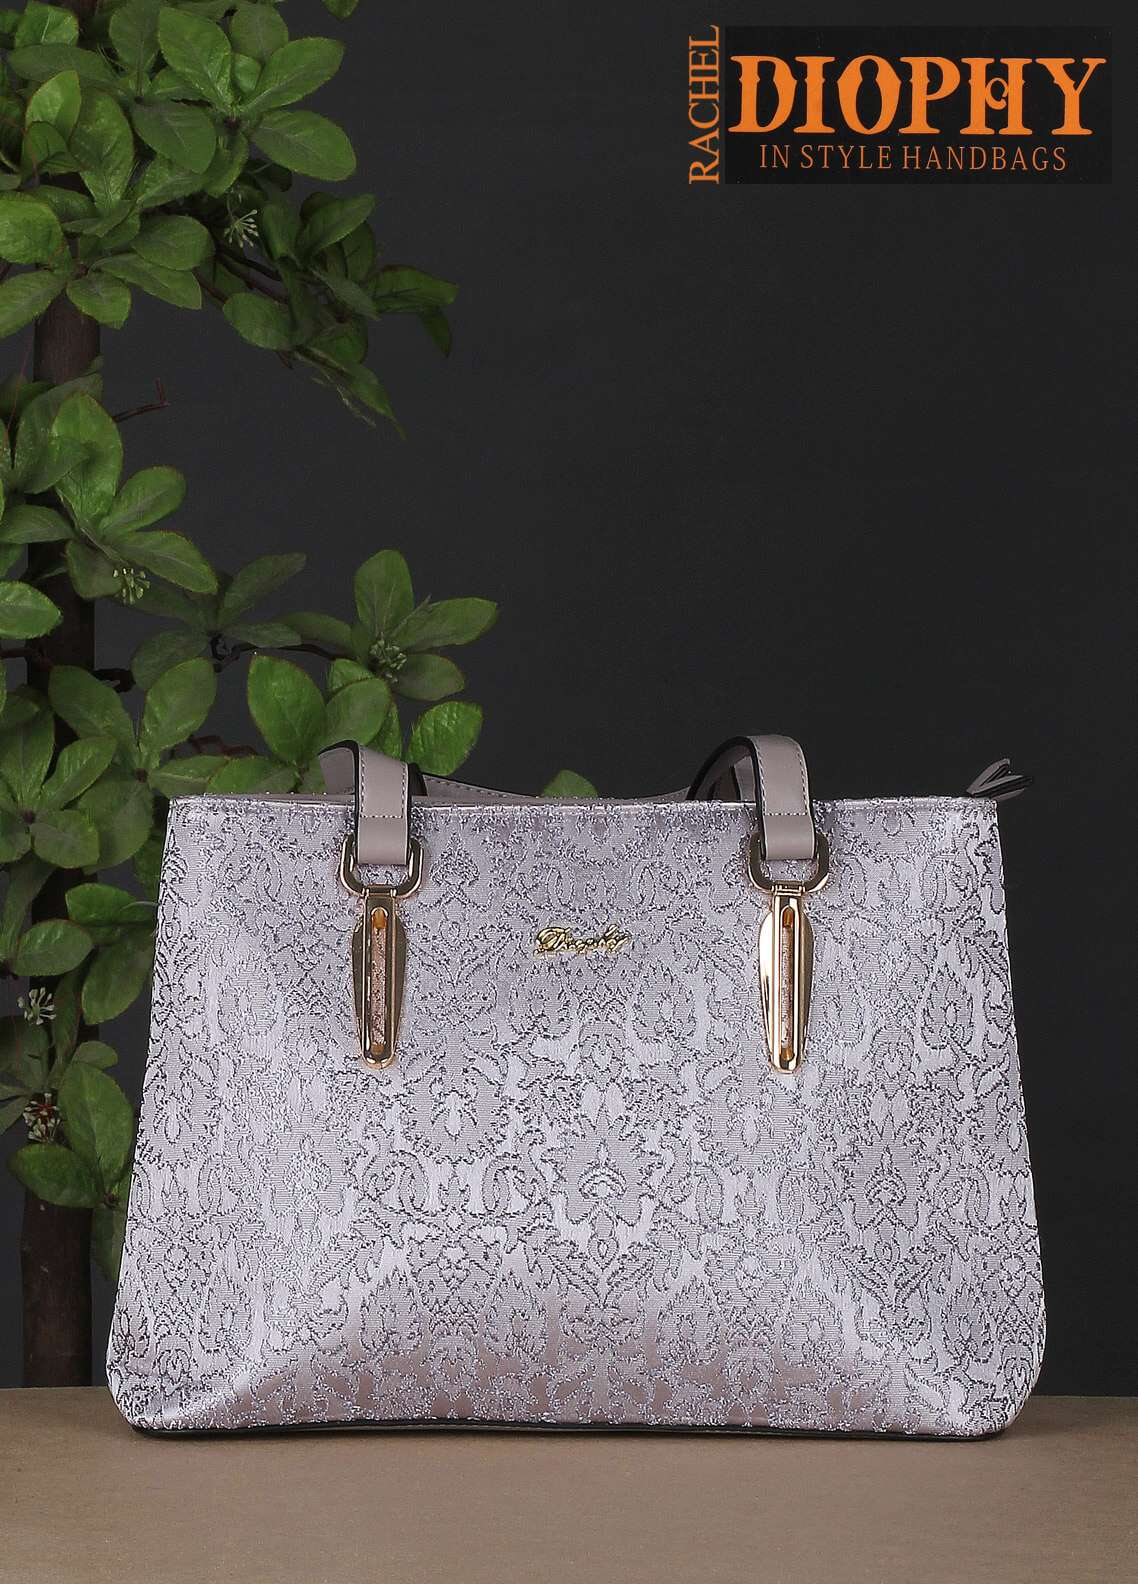 Rachel Diophy PU Leather Satchels Handbags for Women - Silver with Woven Textured